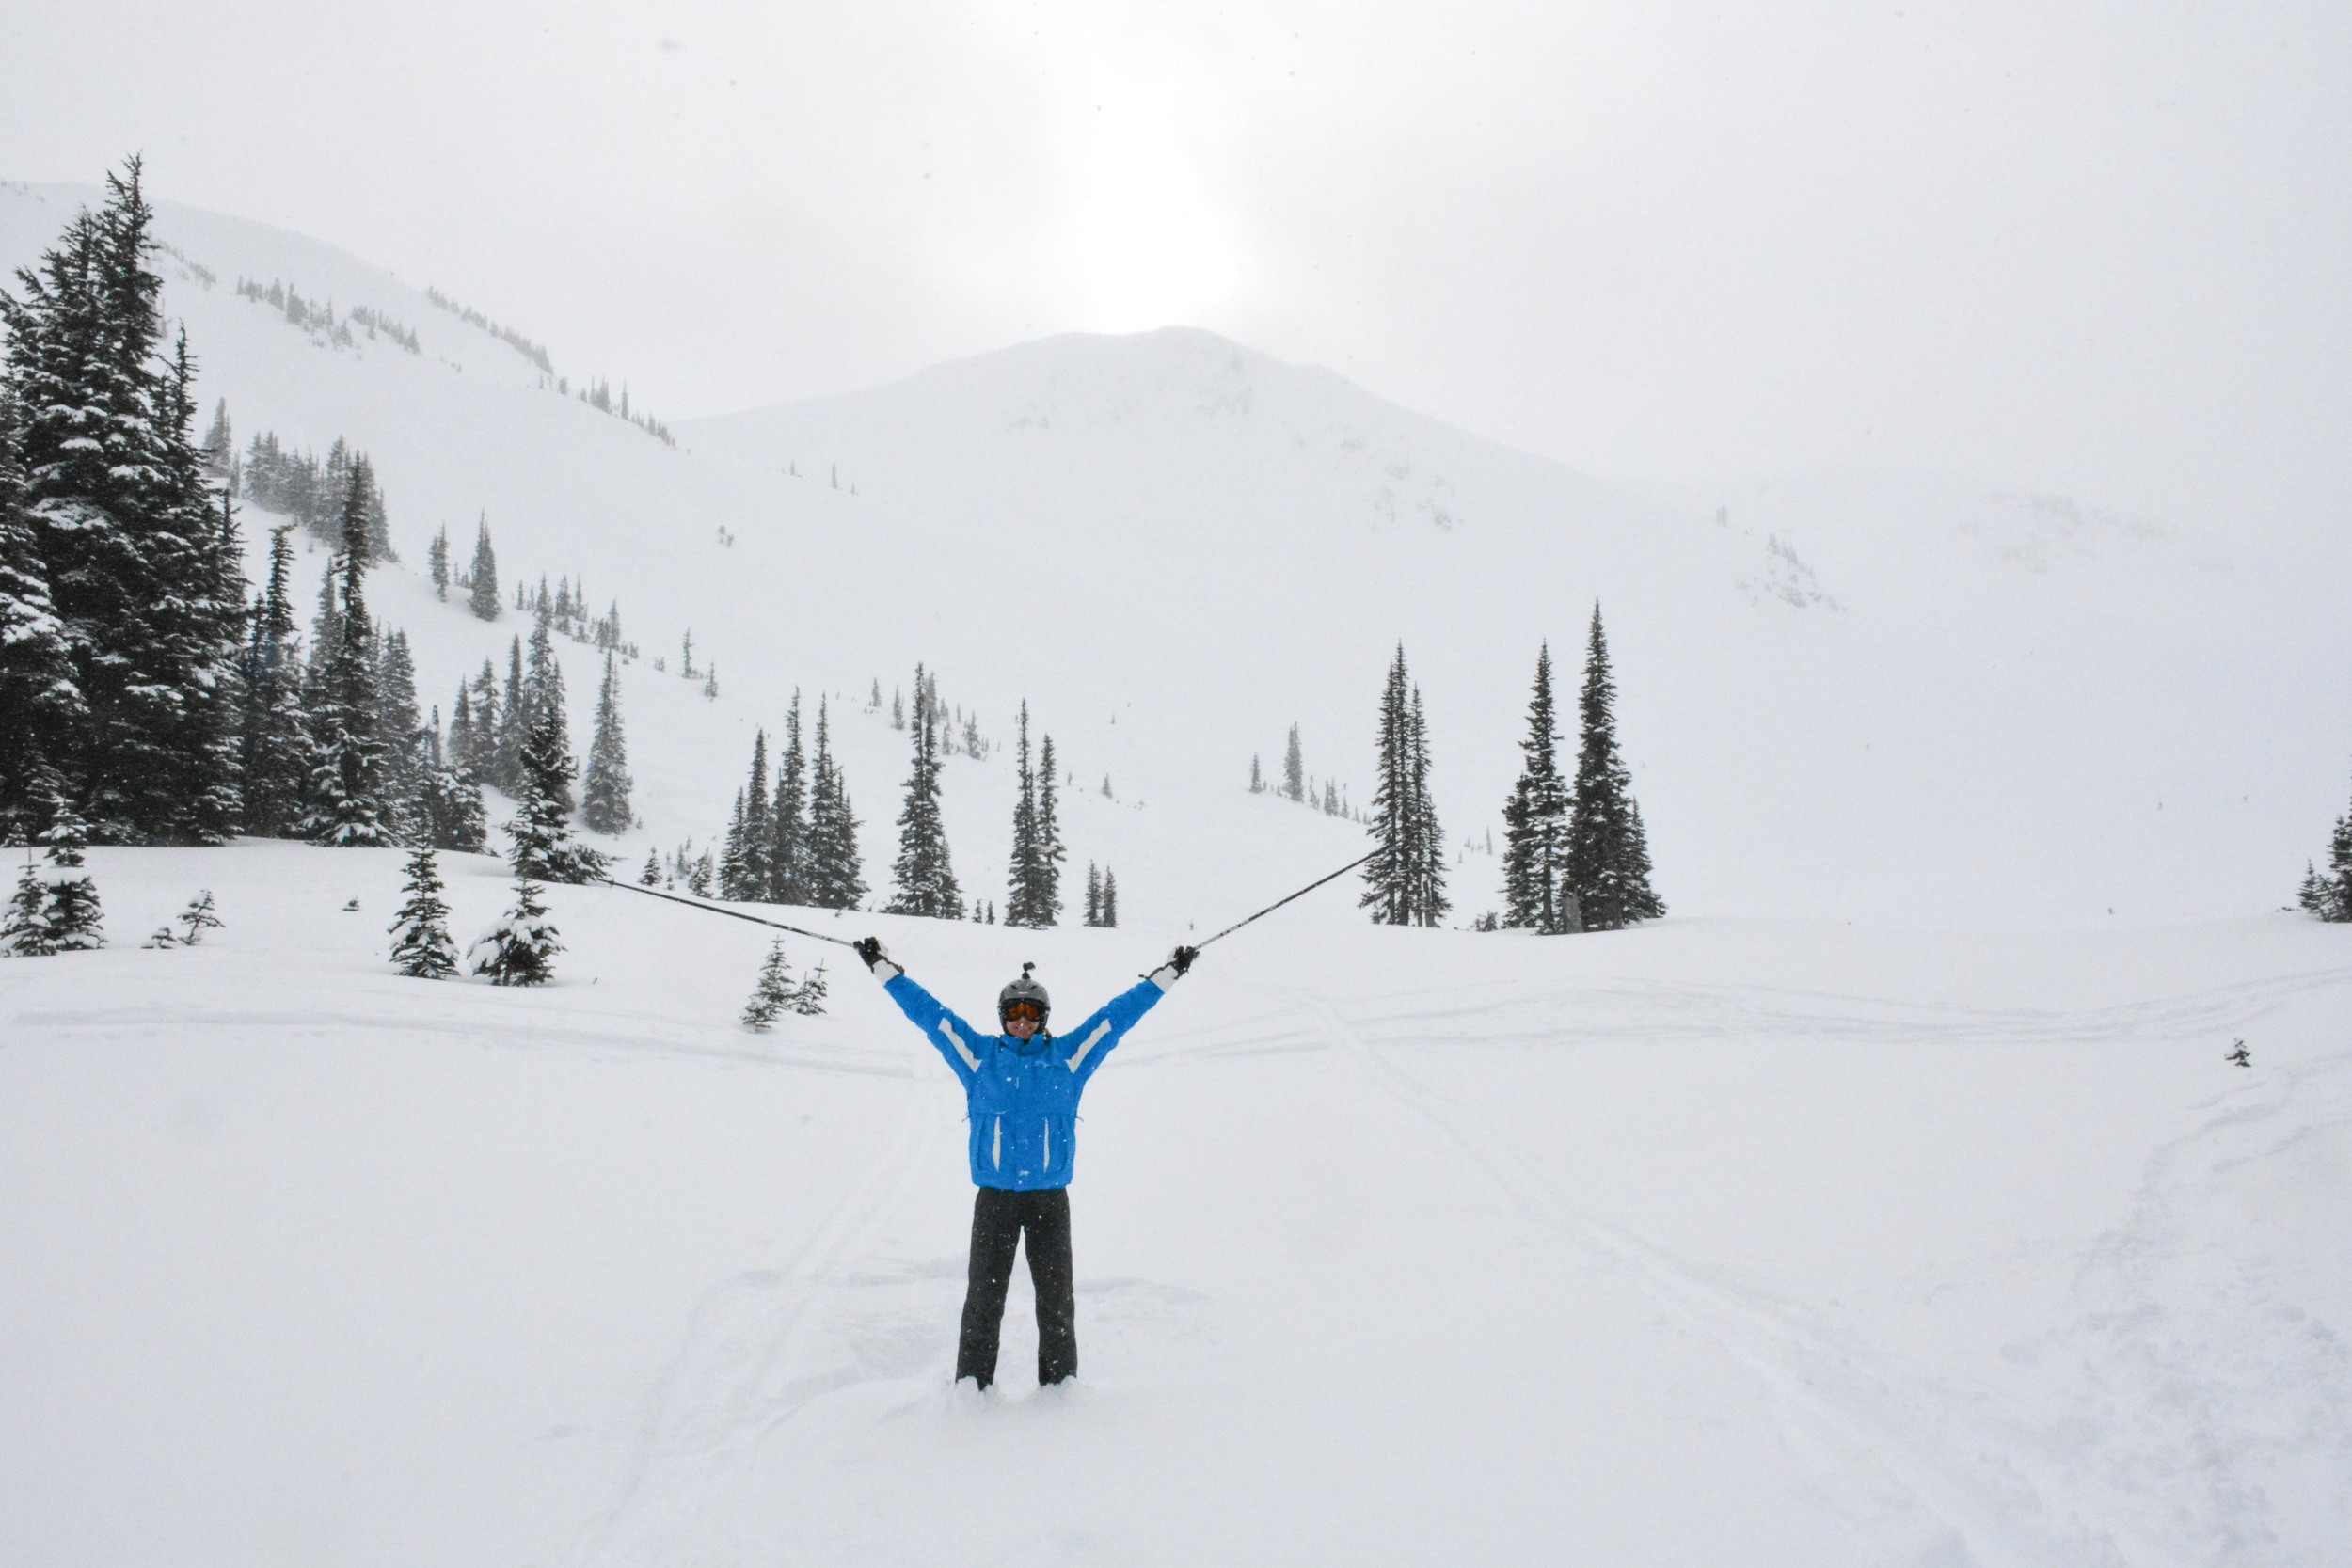 Anton in Deep Powder of Symphony at Whistler